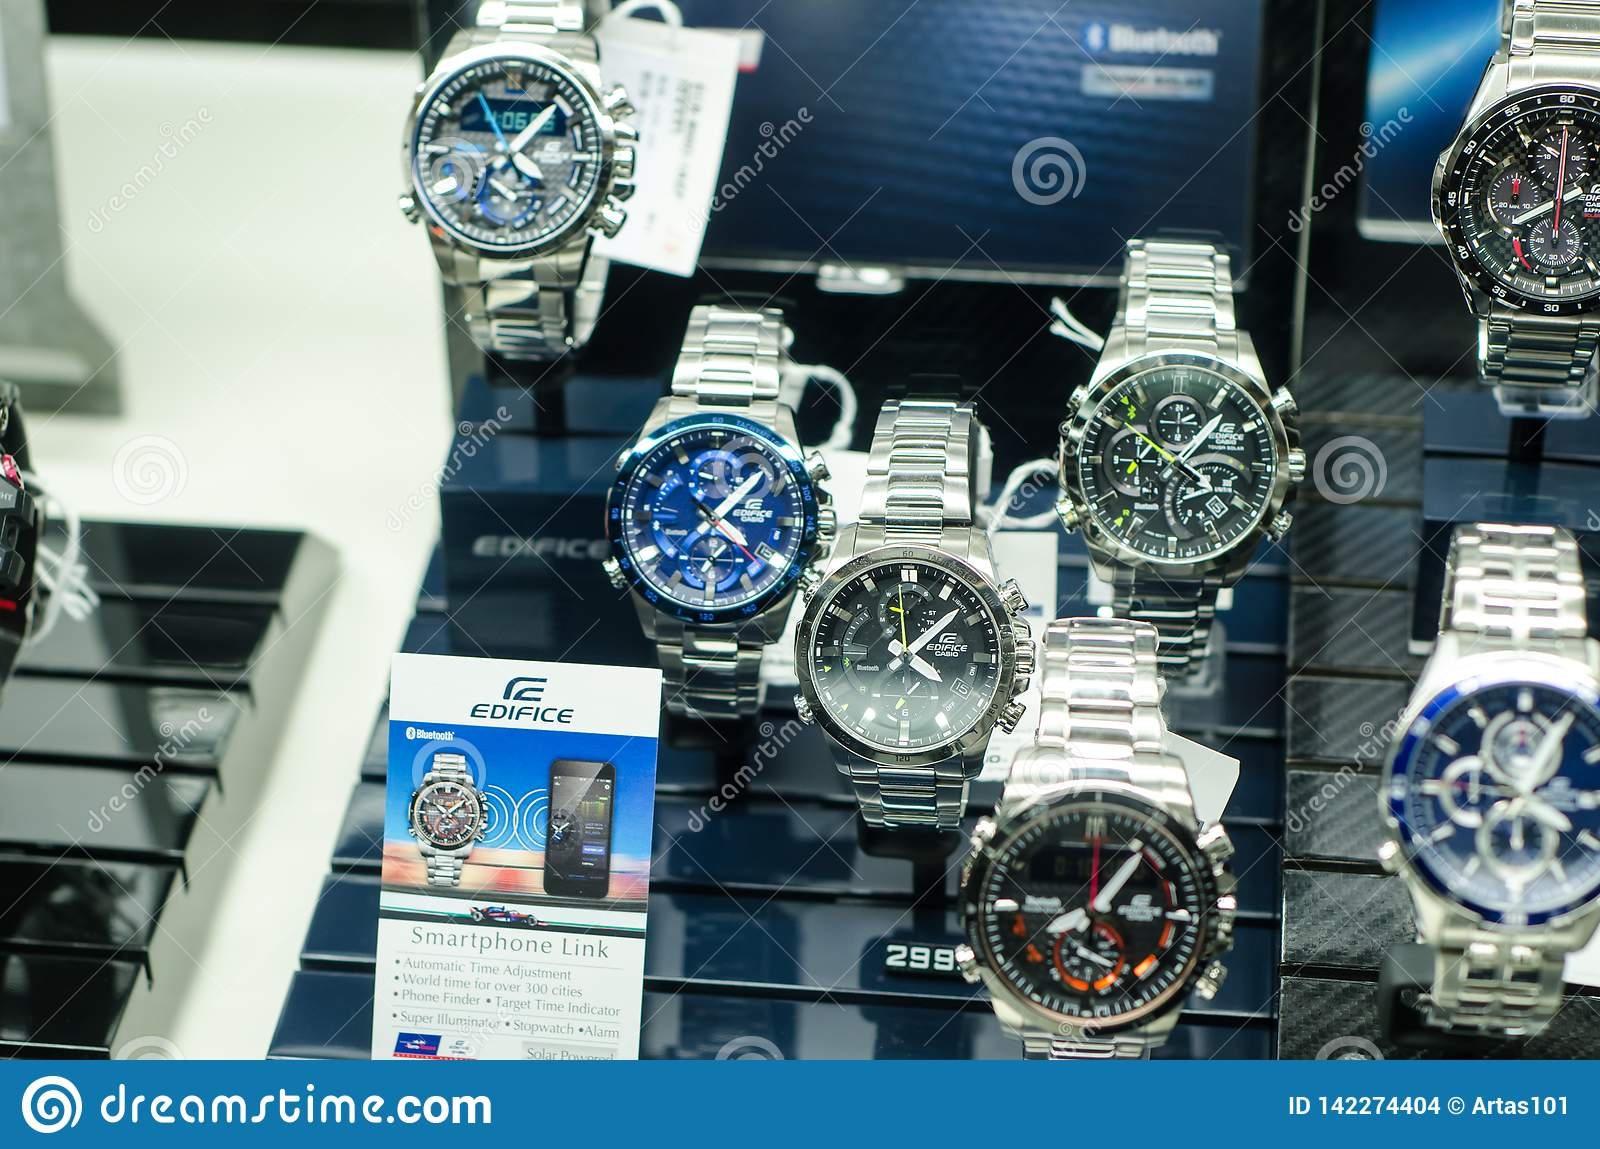 1f6dbc7ffe23 Soest, Germany - January 14, 2019: Casio Edifice In The Shop Window ...